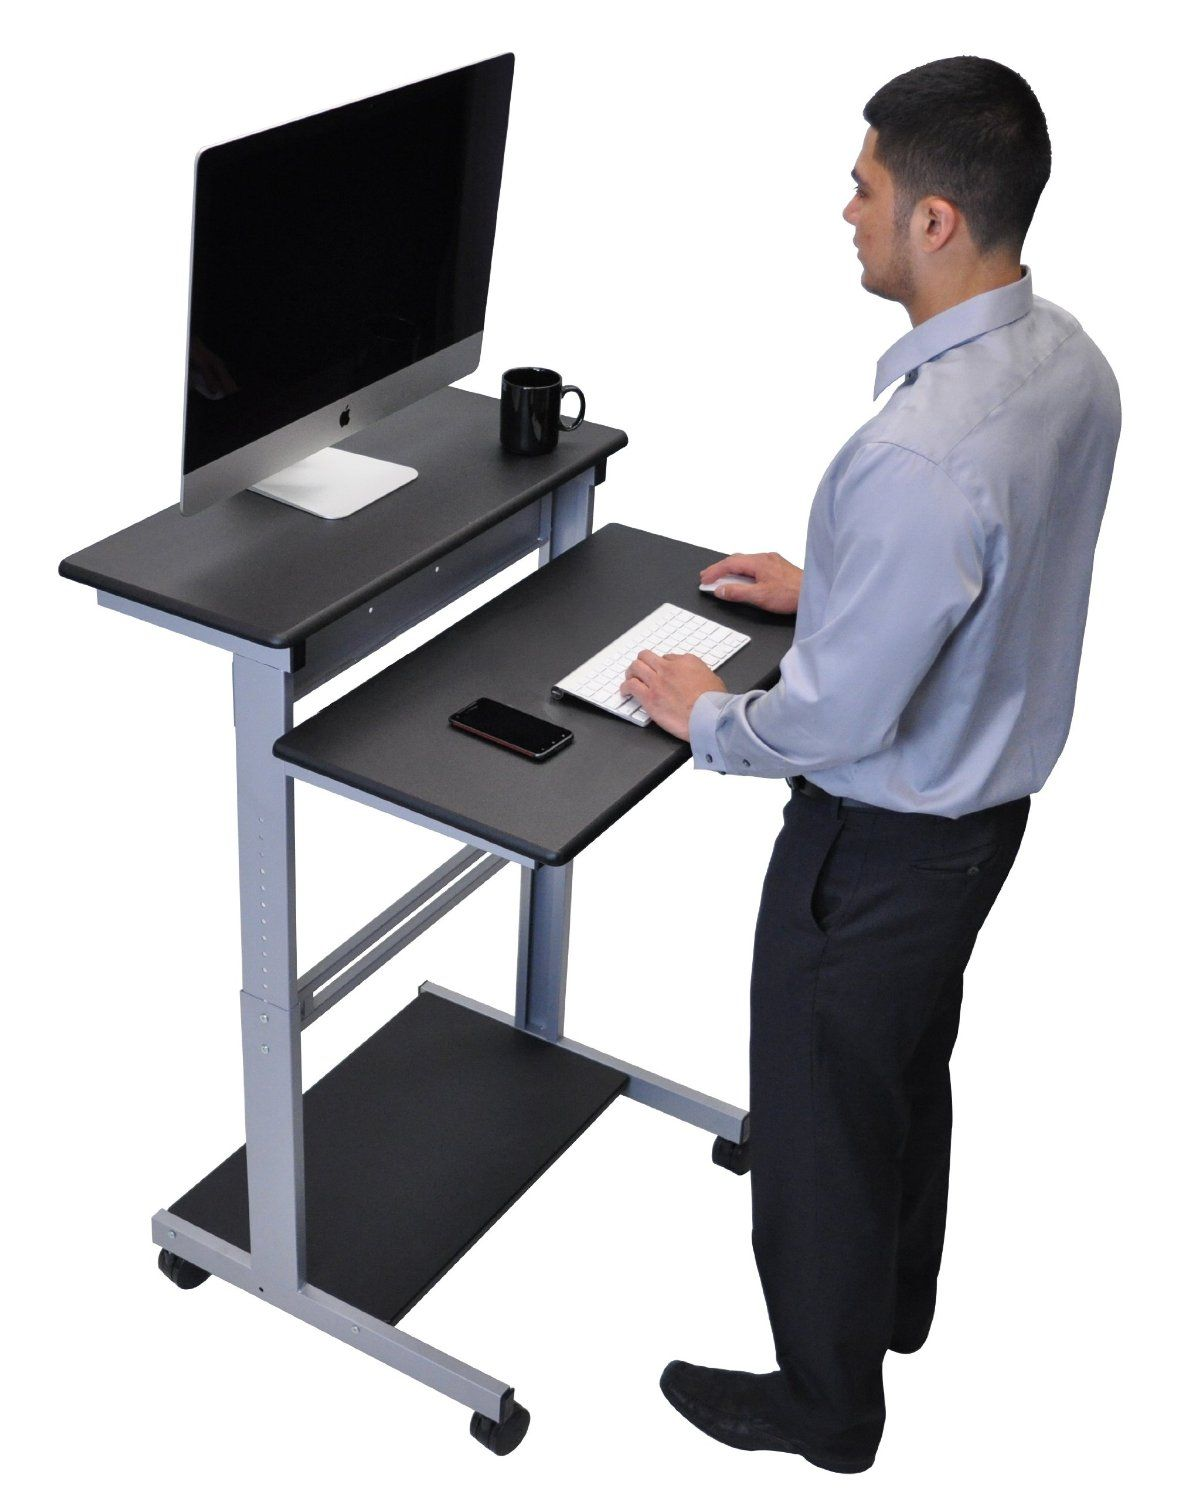 Incredible Amazon Com 32 Mobile Ergonomic Stand Up Desk Computer Download Free Architecture Designs Scobabritishbridgeorg